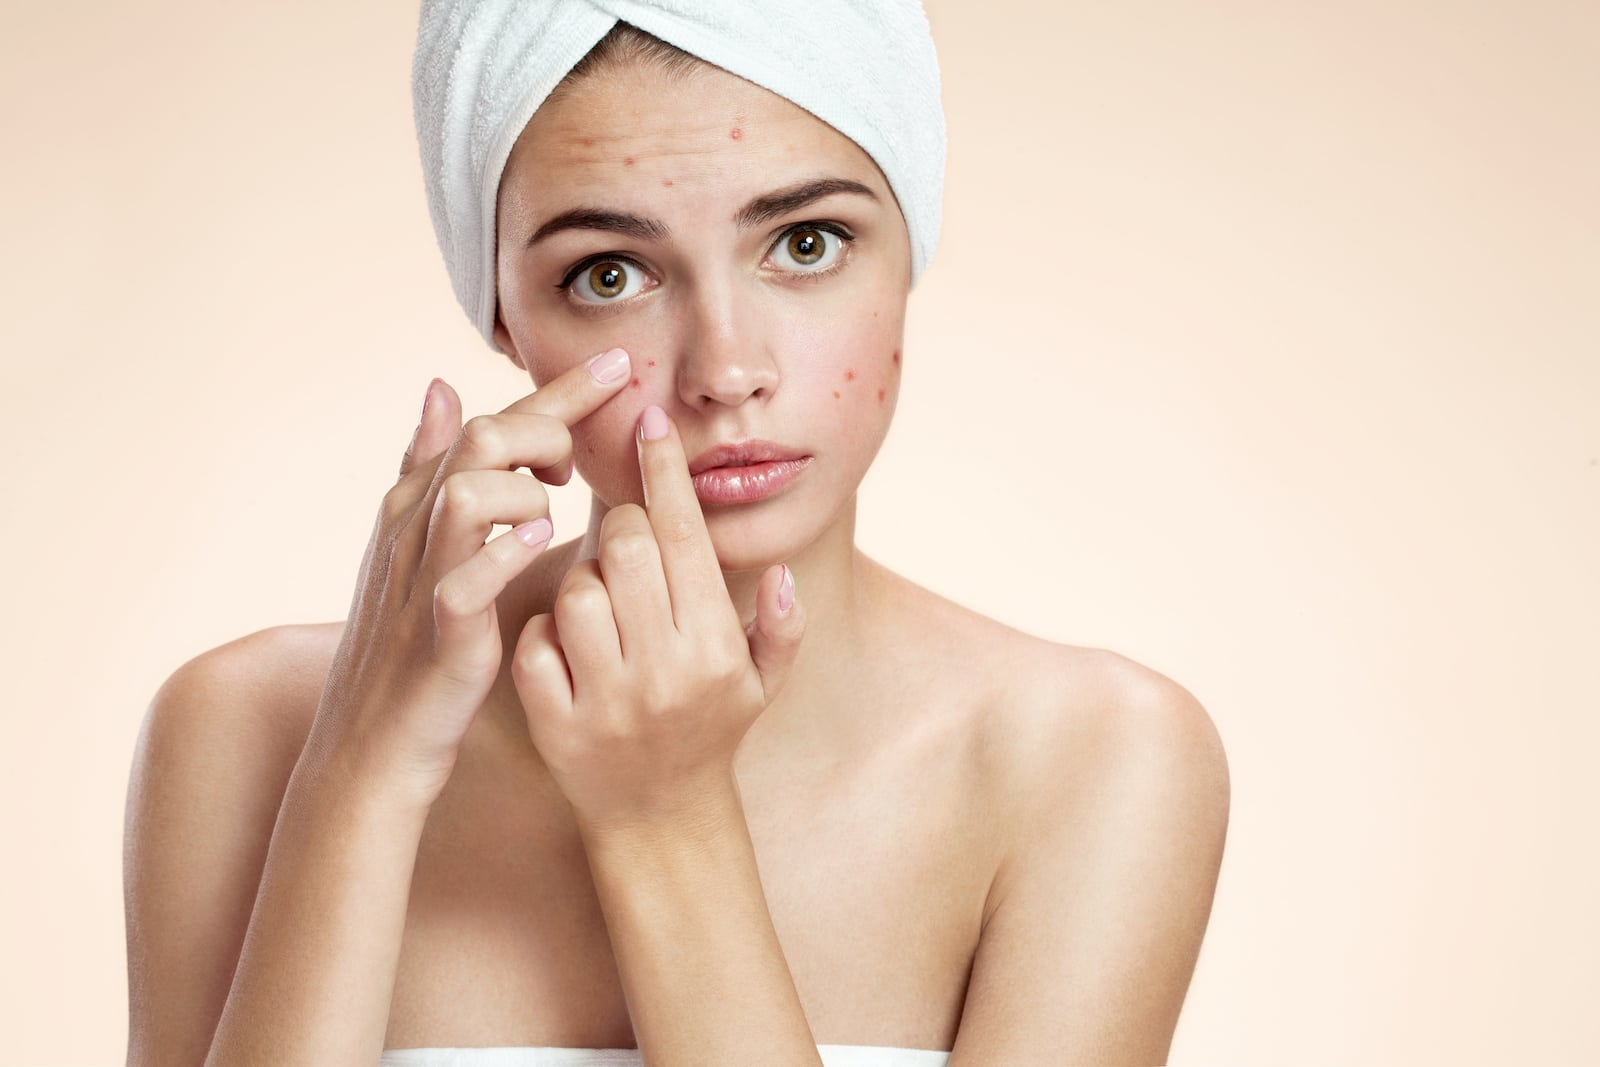 Woman with acne spot pimple